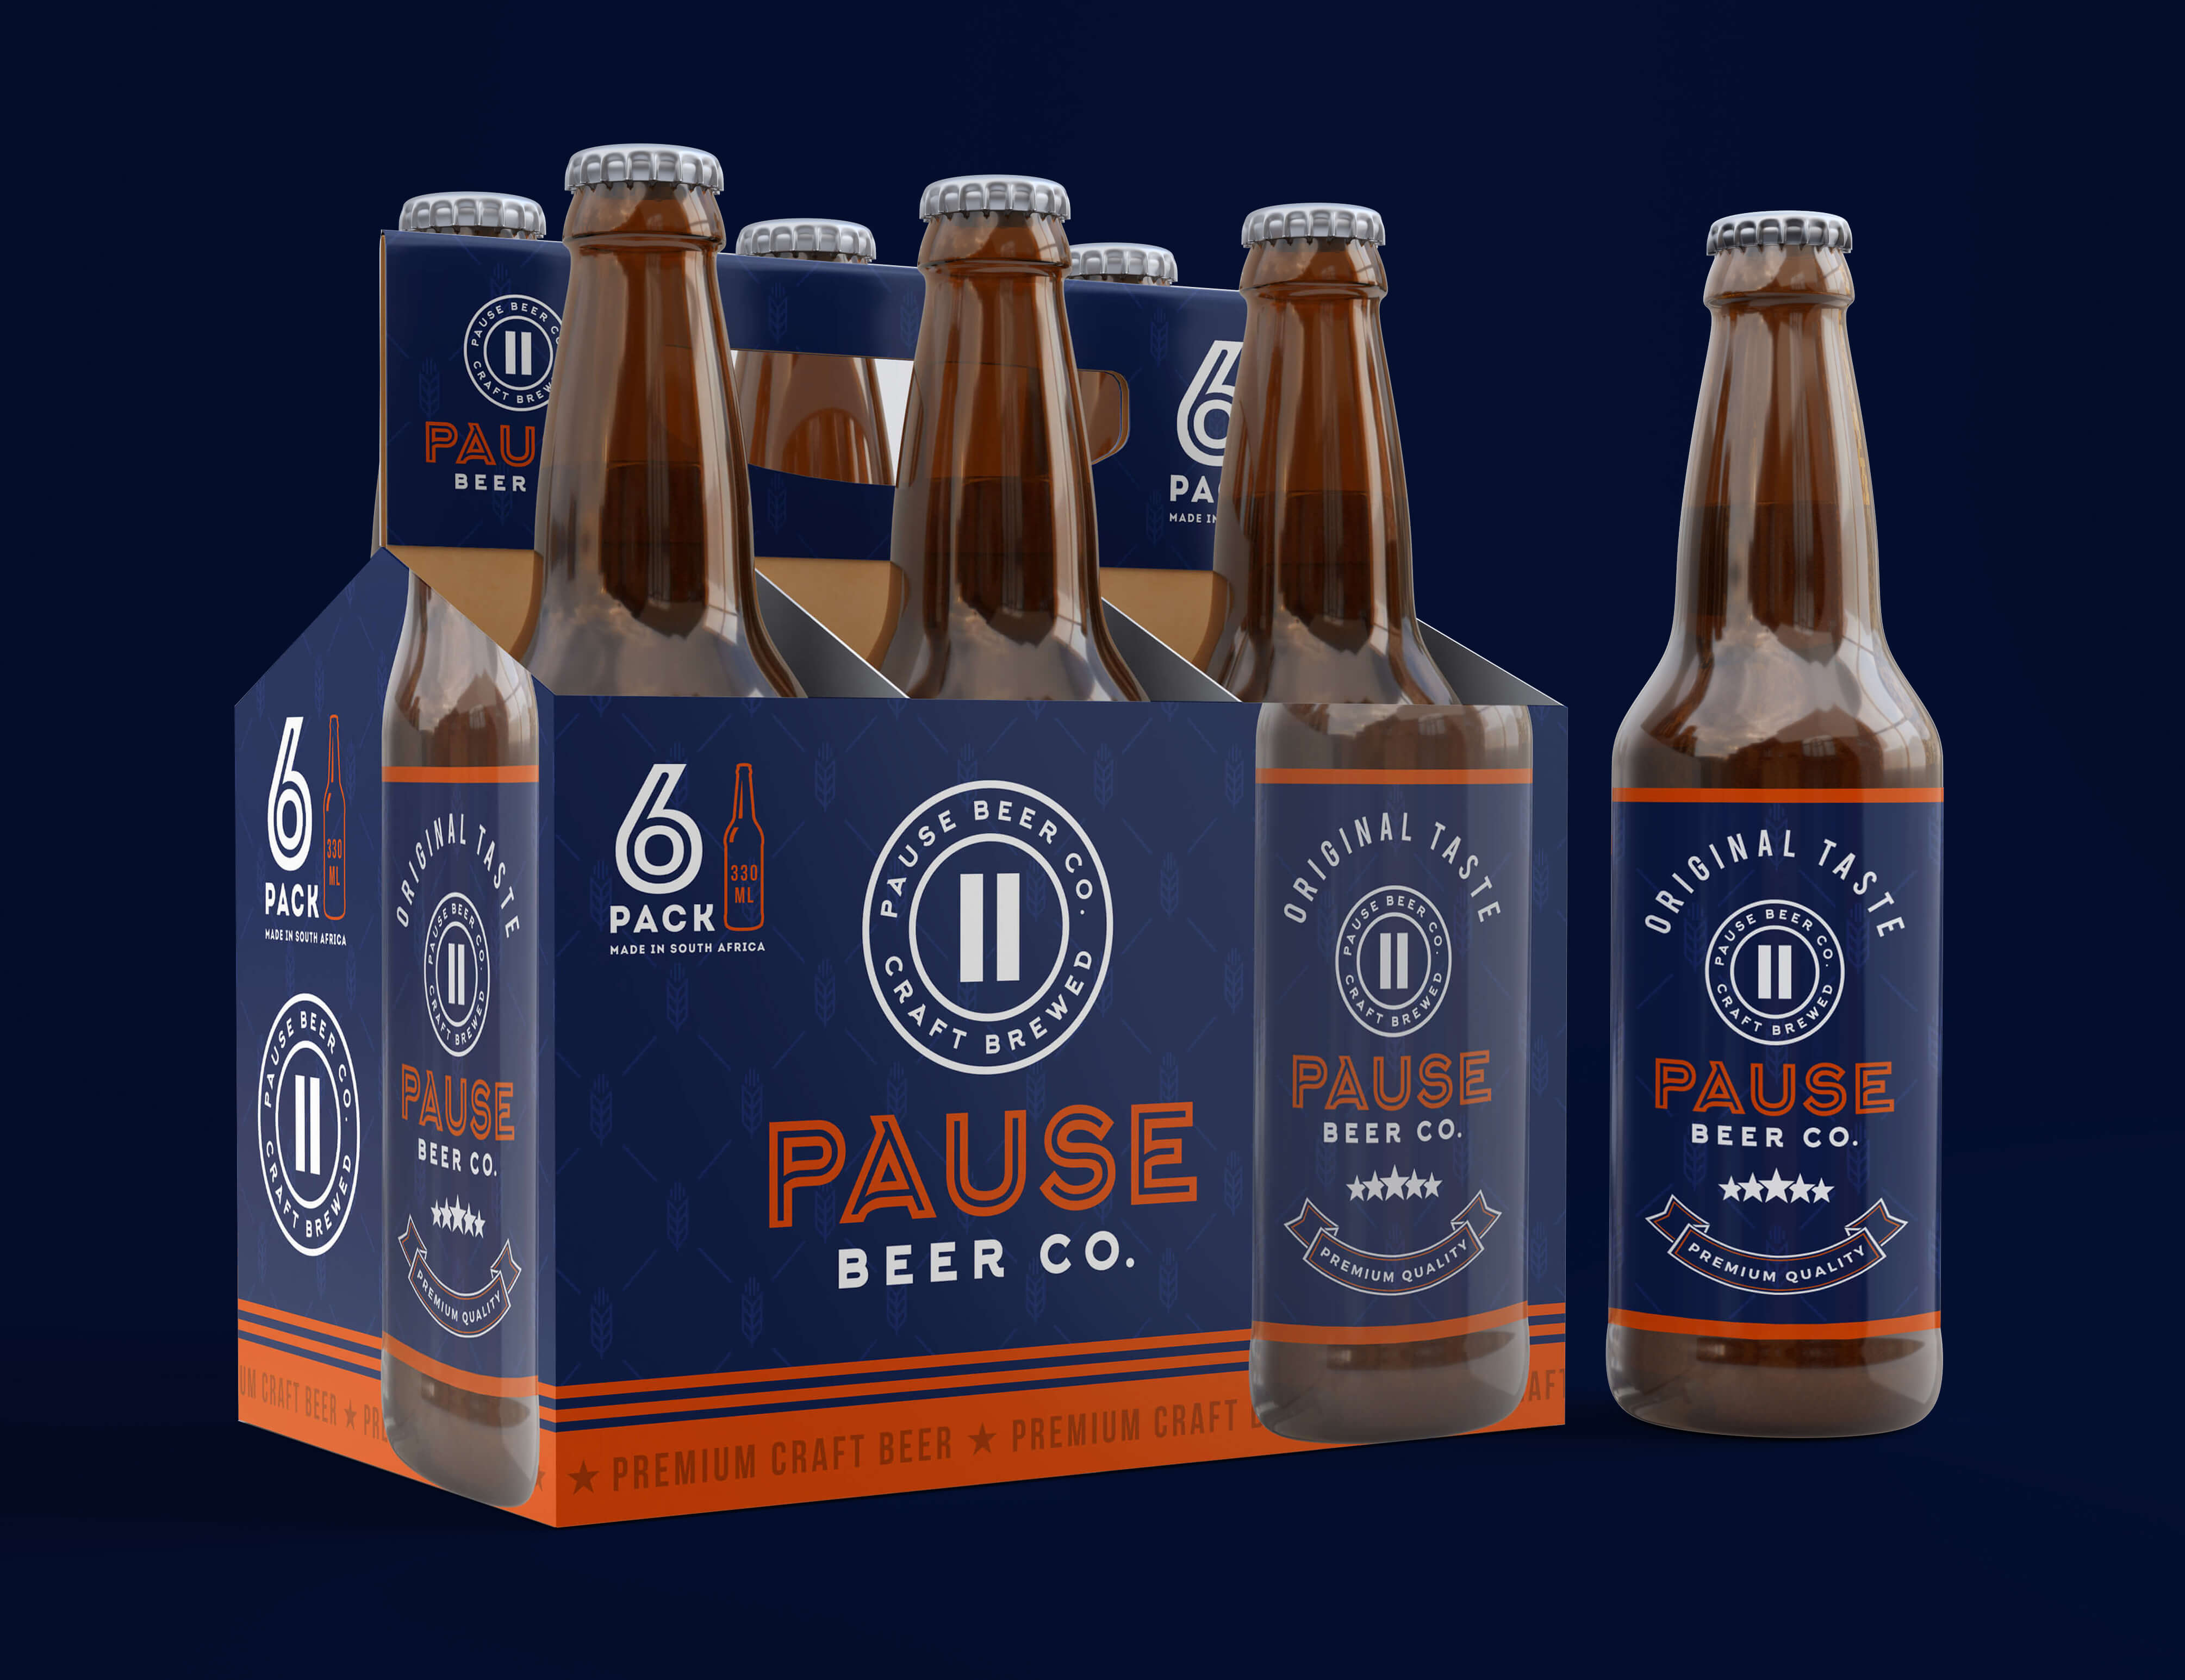 pause-beer-co-case-study-corporate-identity-design-6-pack-beer-packaging.jpg